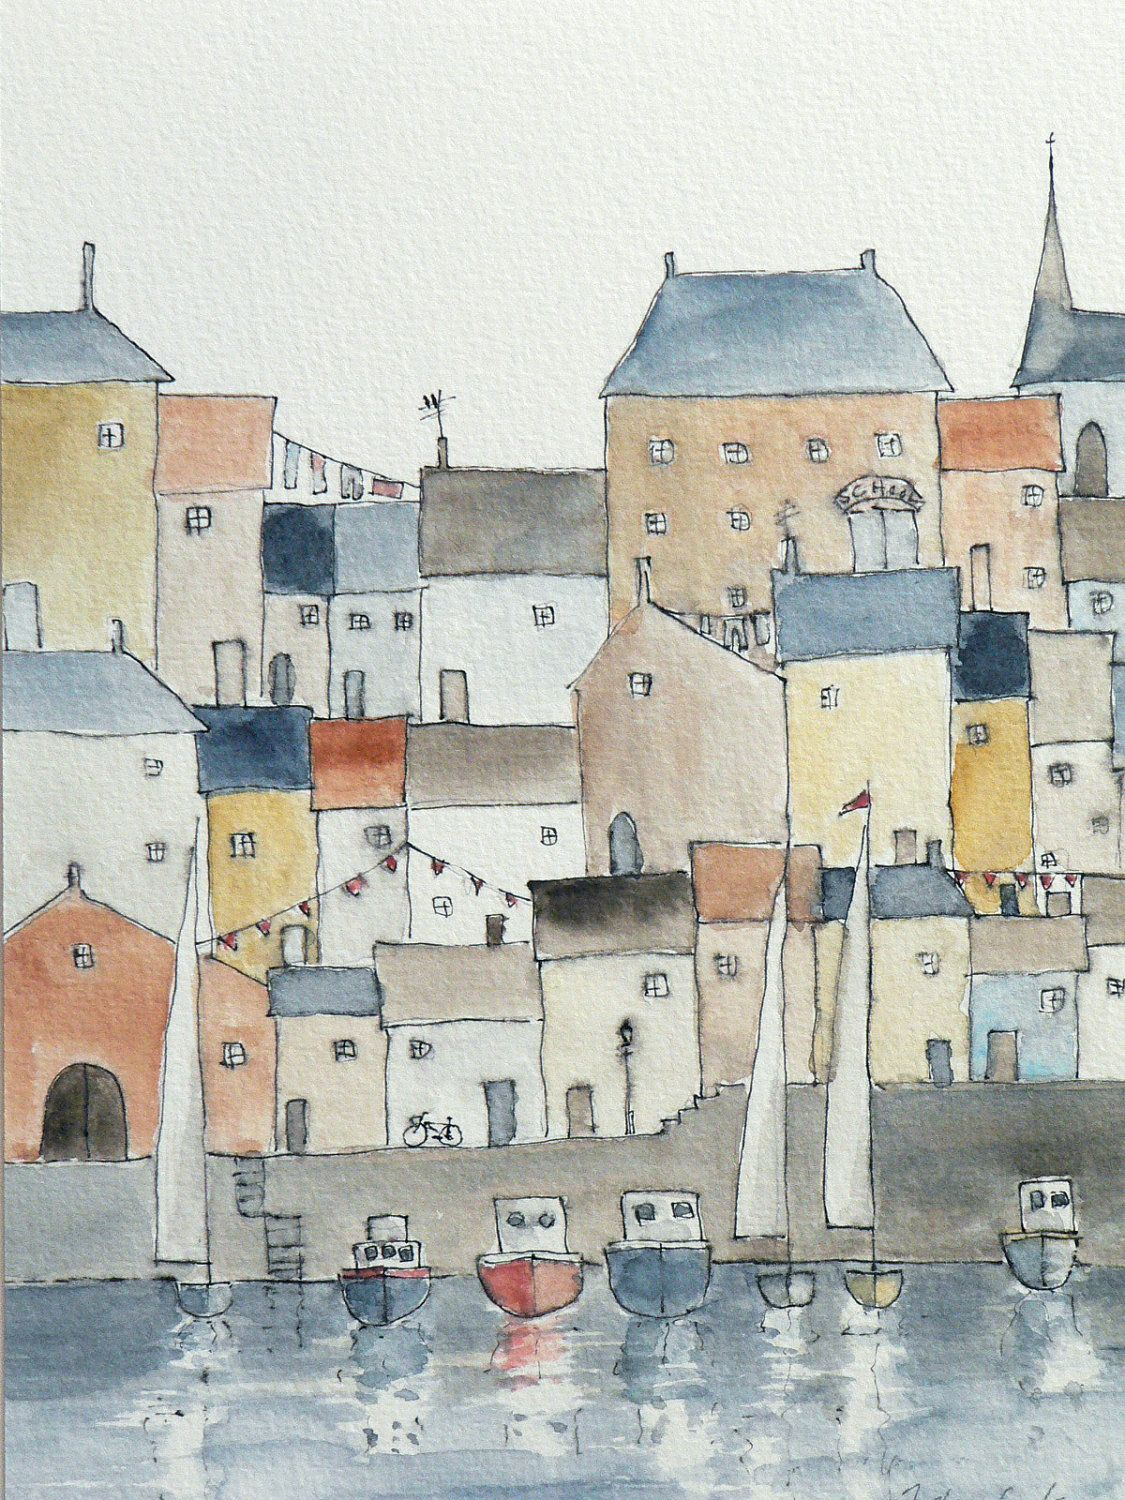 Watercolor artists directory wiki - Original Watercolor Painting Of A Harbor Town By Atelier28 On Etsy 54 00 Via Etsy